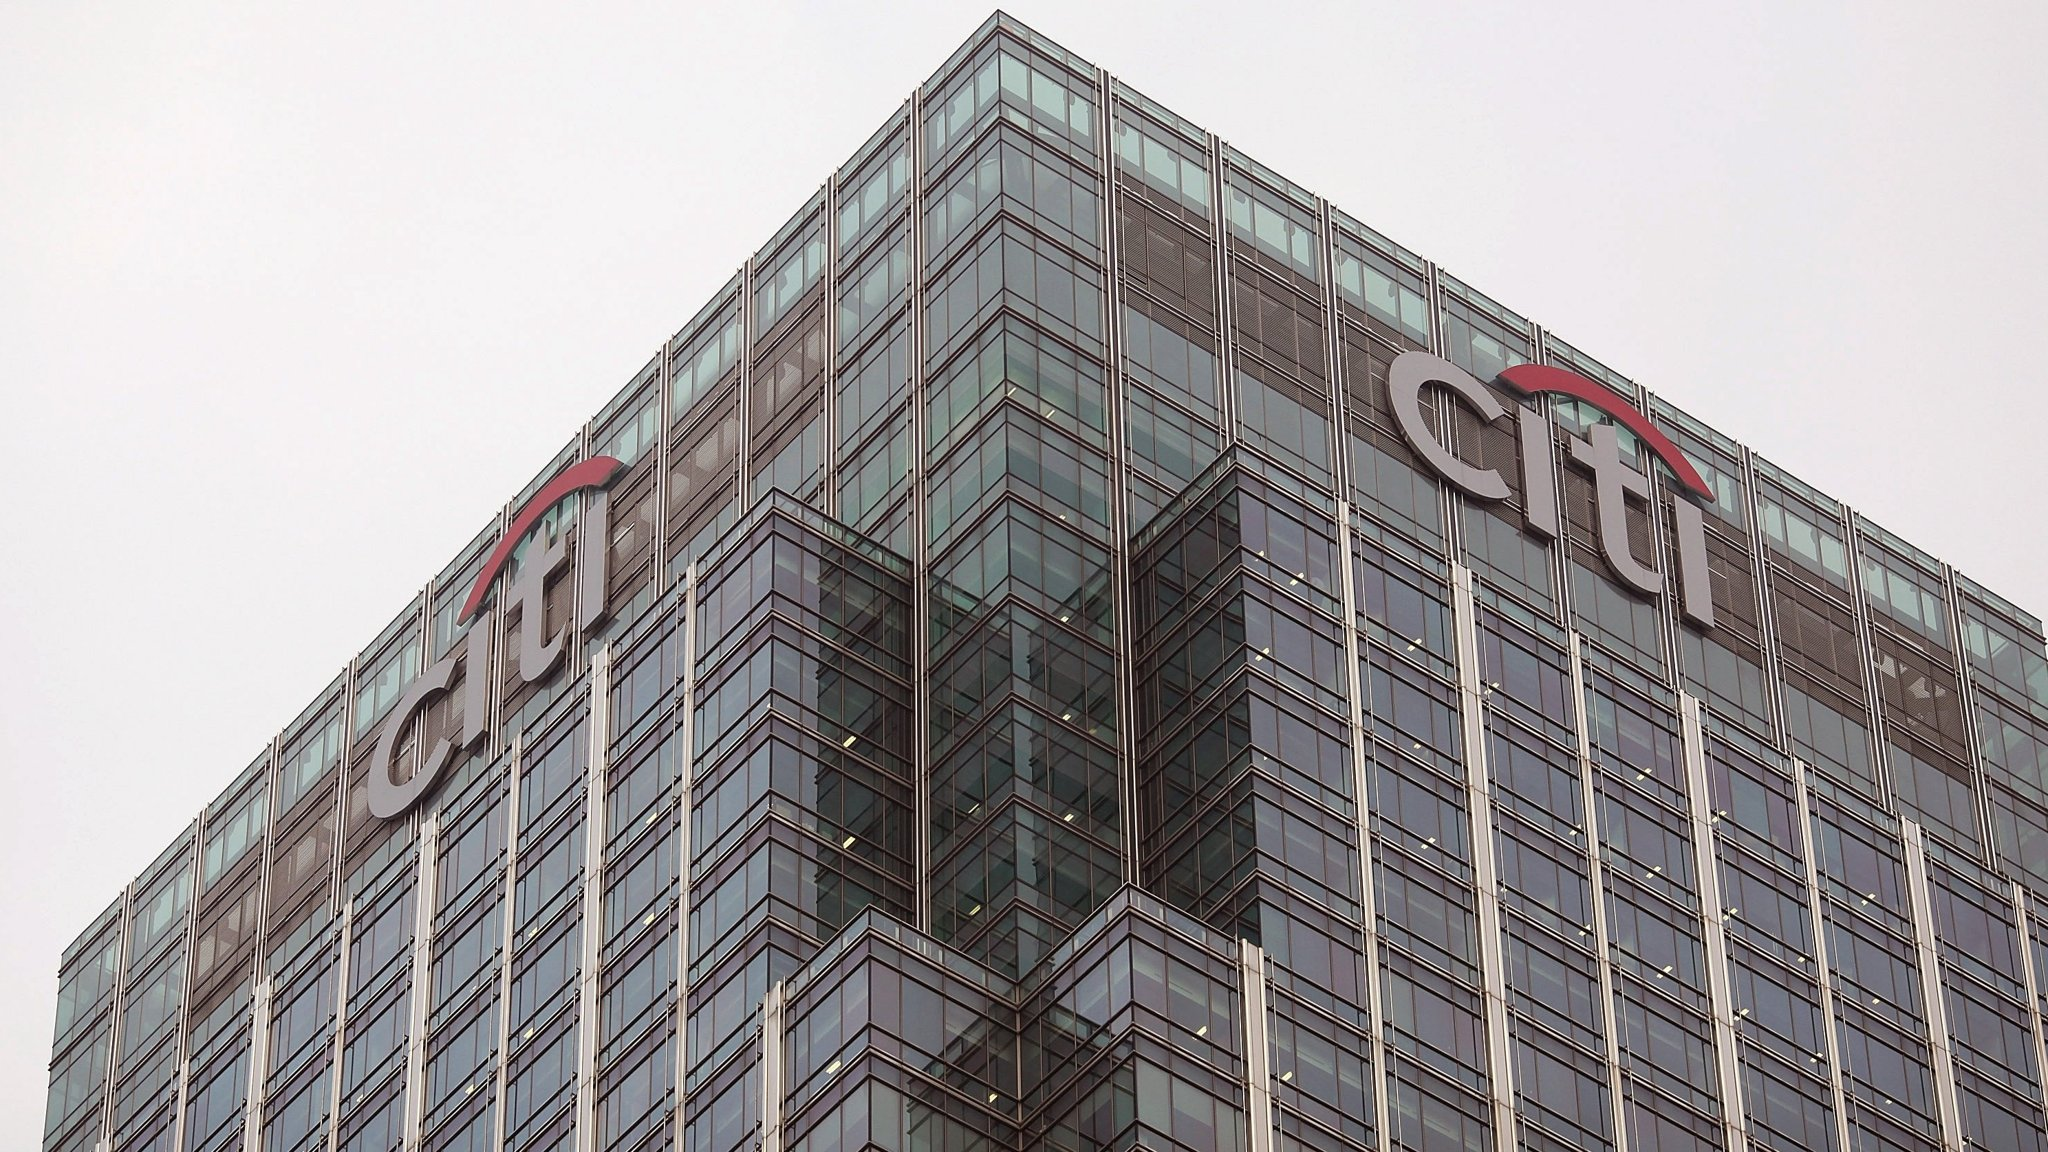 Citigroup tops list of global banks posing systemic risk | Financial